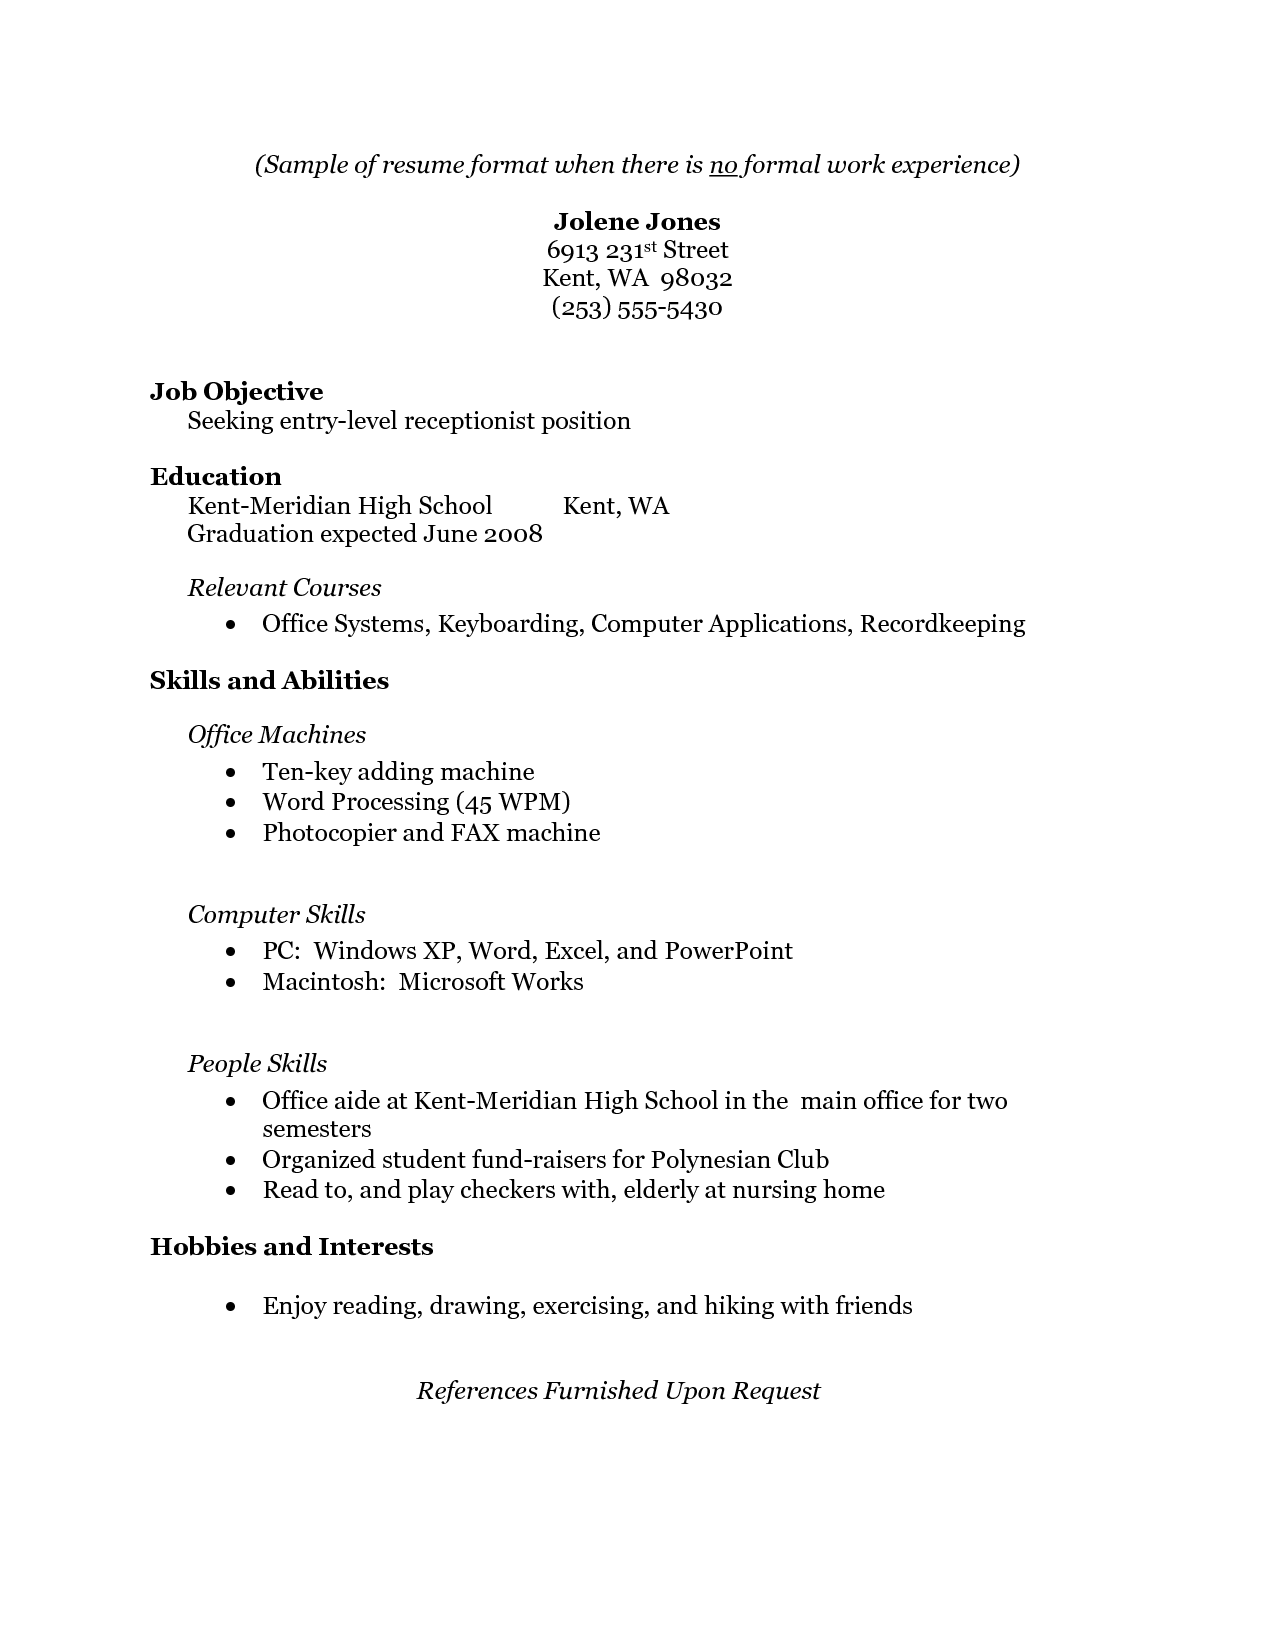 Resume With No Work Experience Samples Brittney Taylor